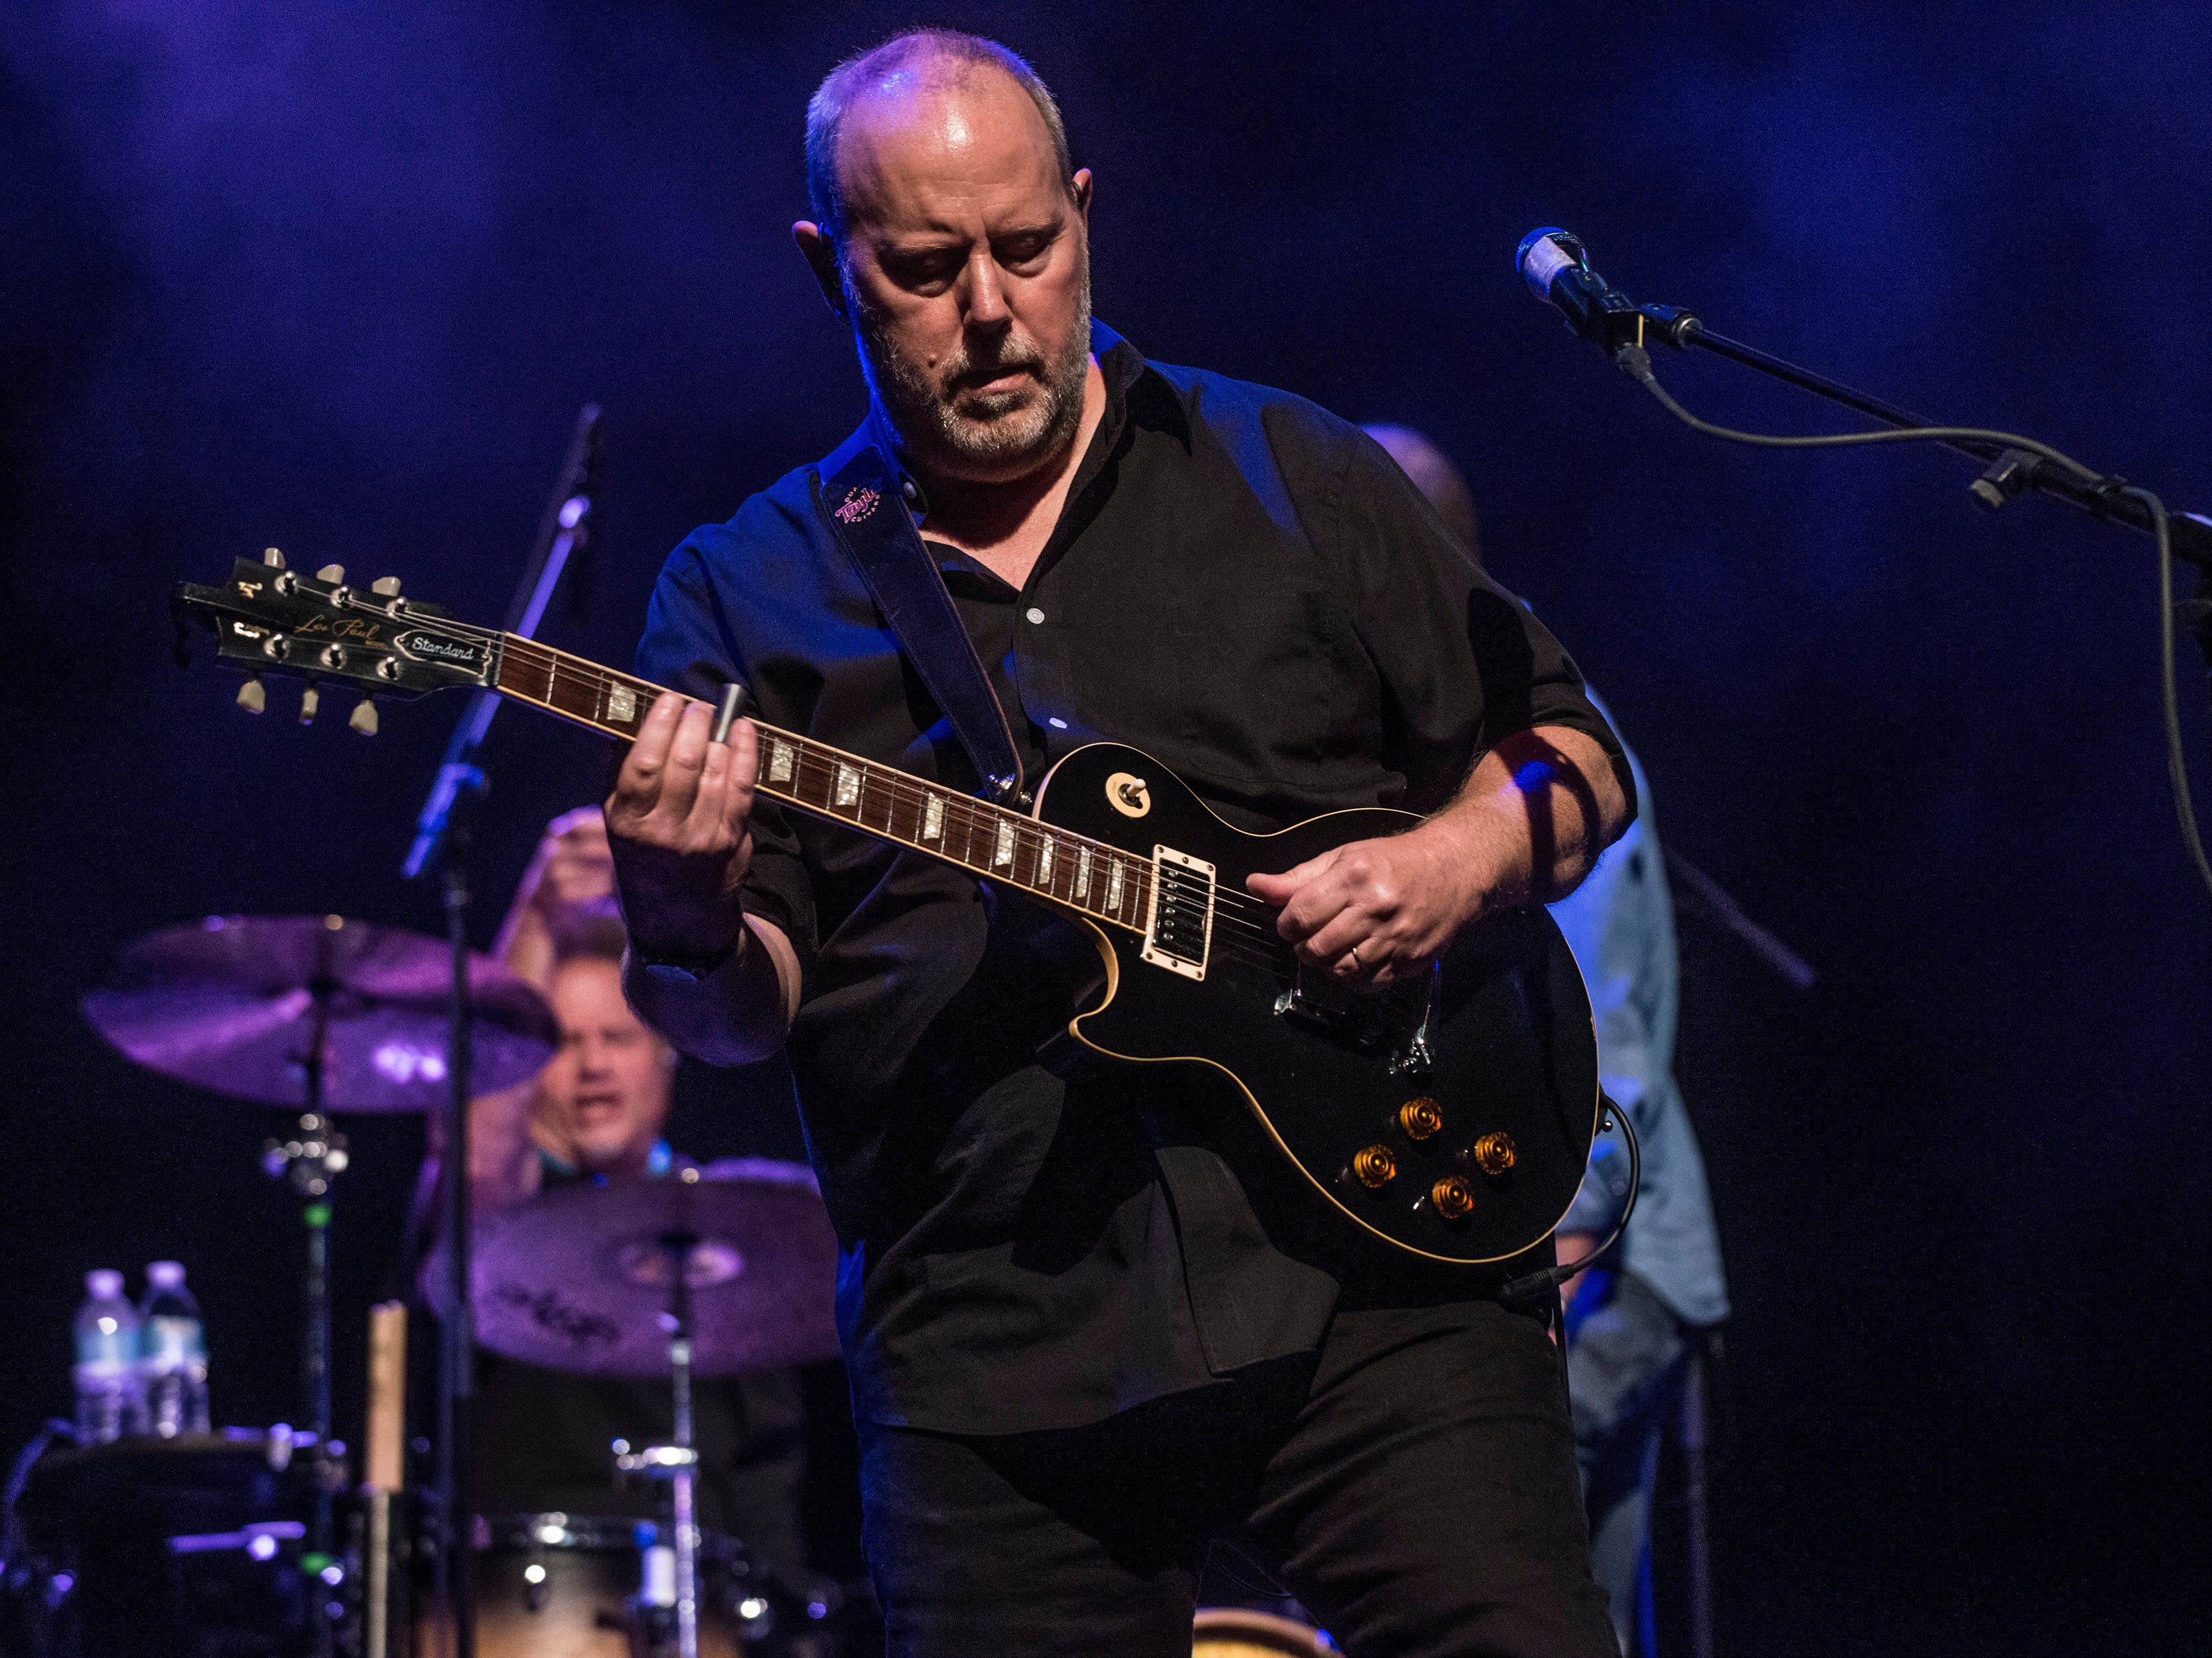 Montgomery musician Bill Hinds plays with Paul Thorn on Friday, Oct. 26, 2018, at the Montgomery Performing Arts Centre.